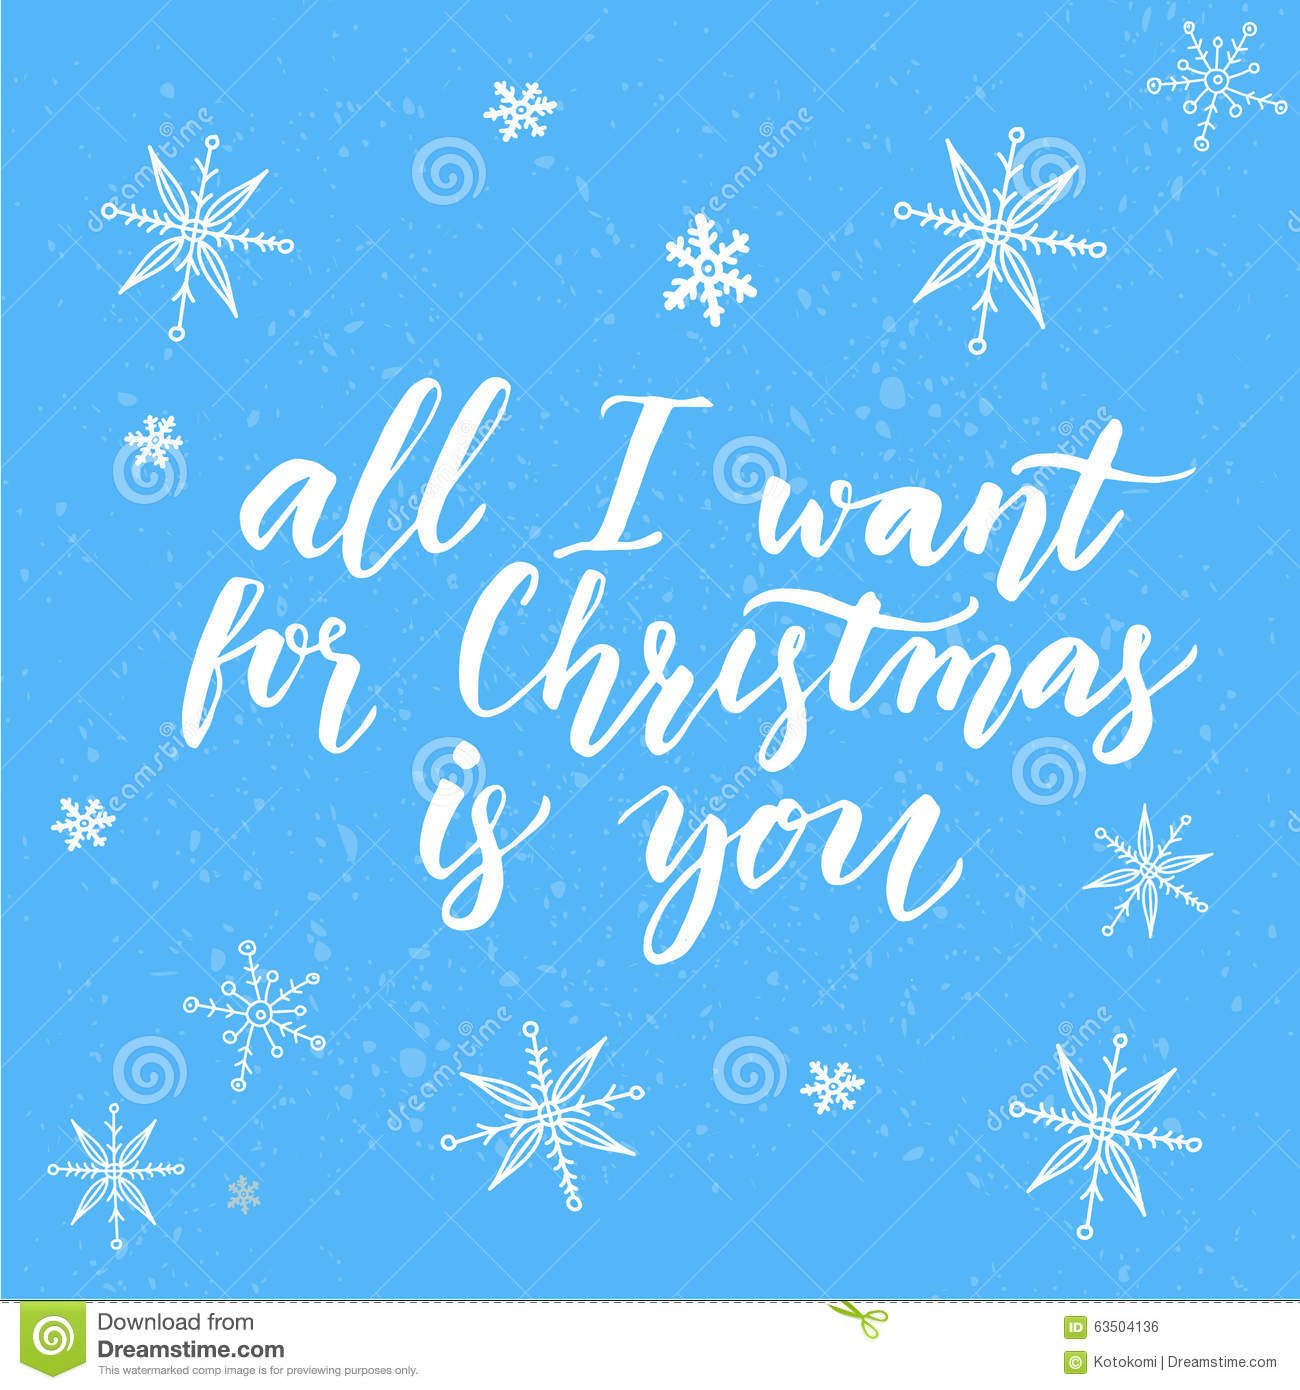 All i want for christmas is you inspirational stock